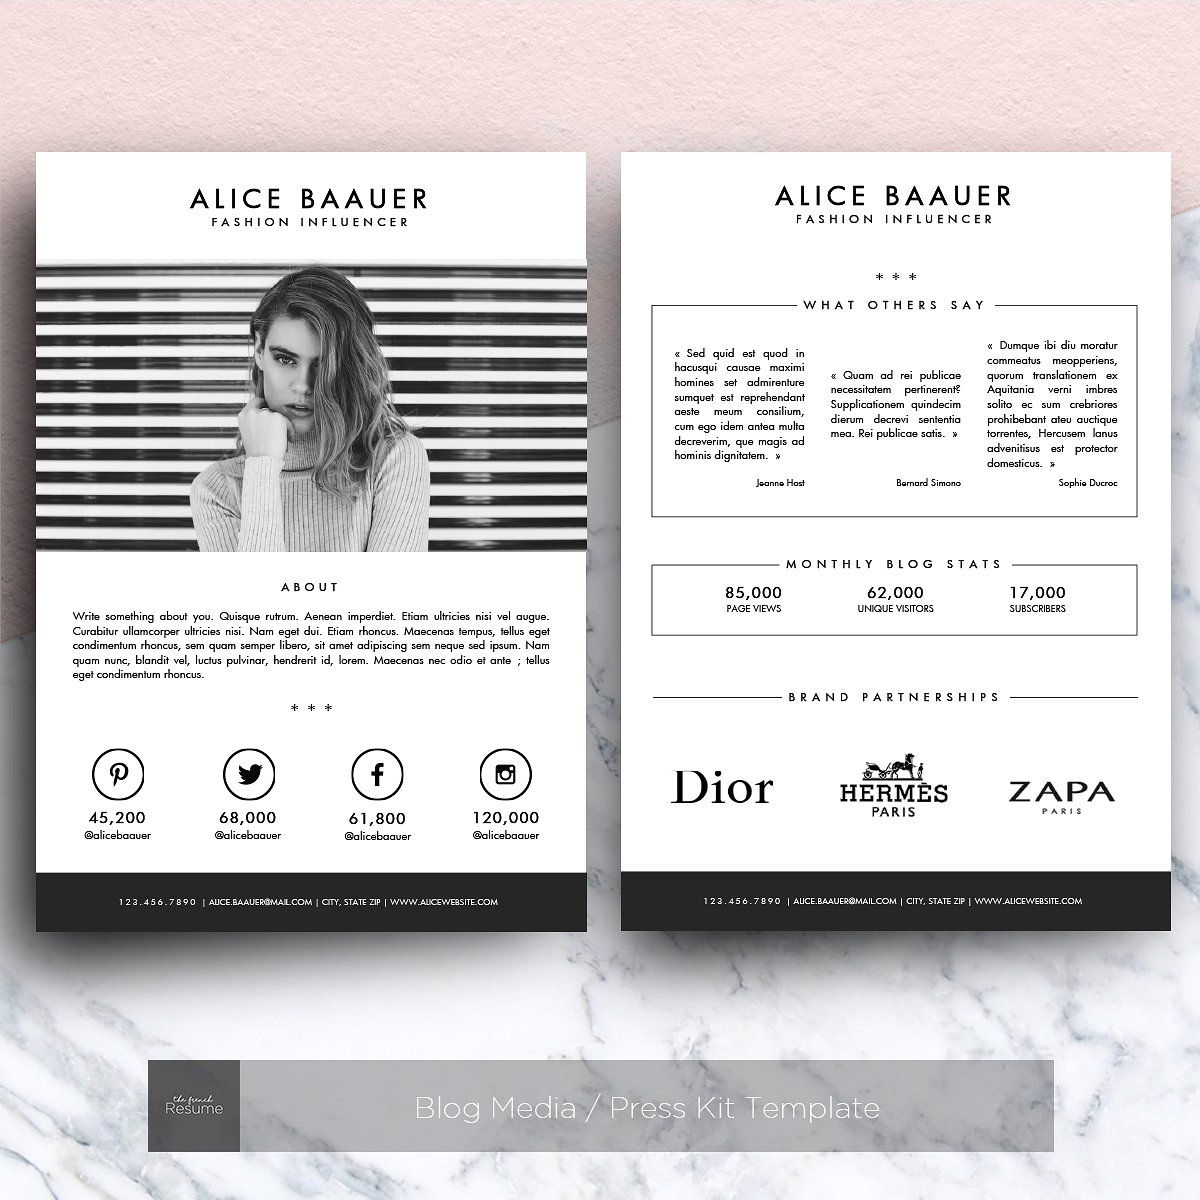 Blog Media / Press Kit Template   Presentations   1